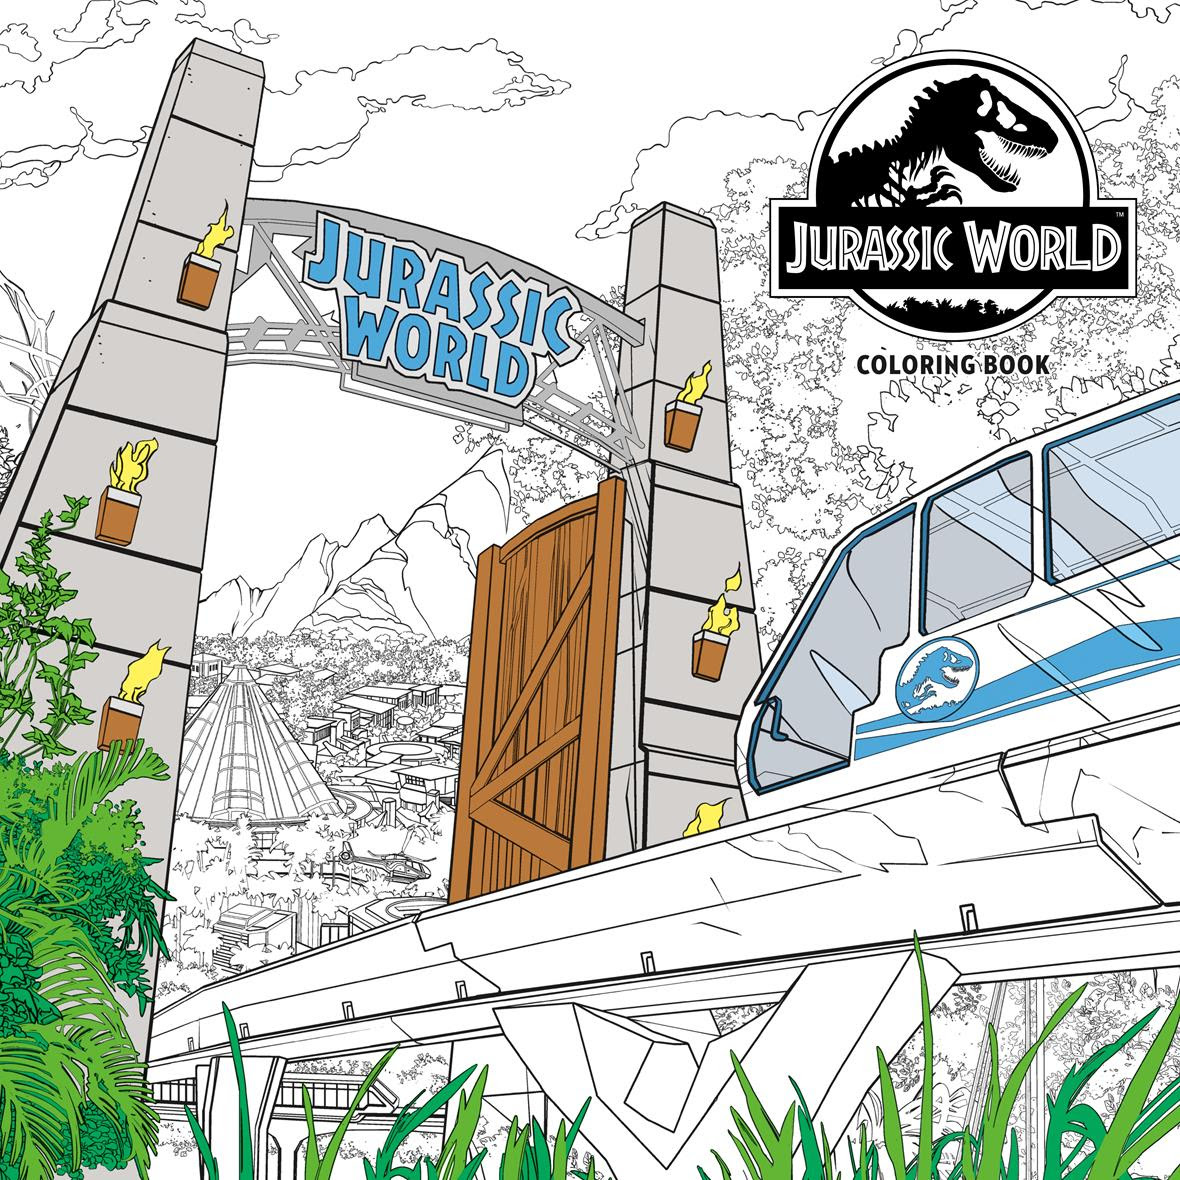 Jurassic World coloring book